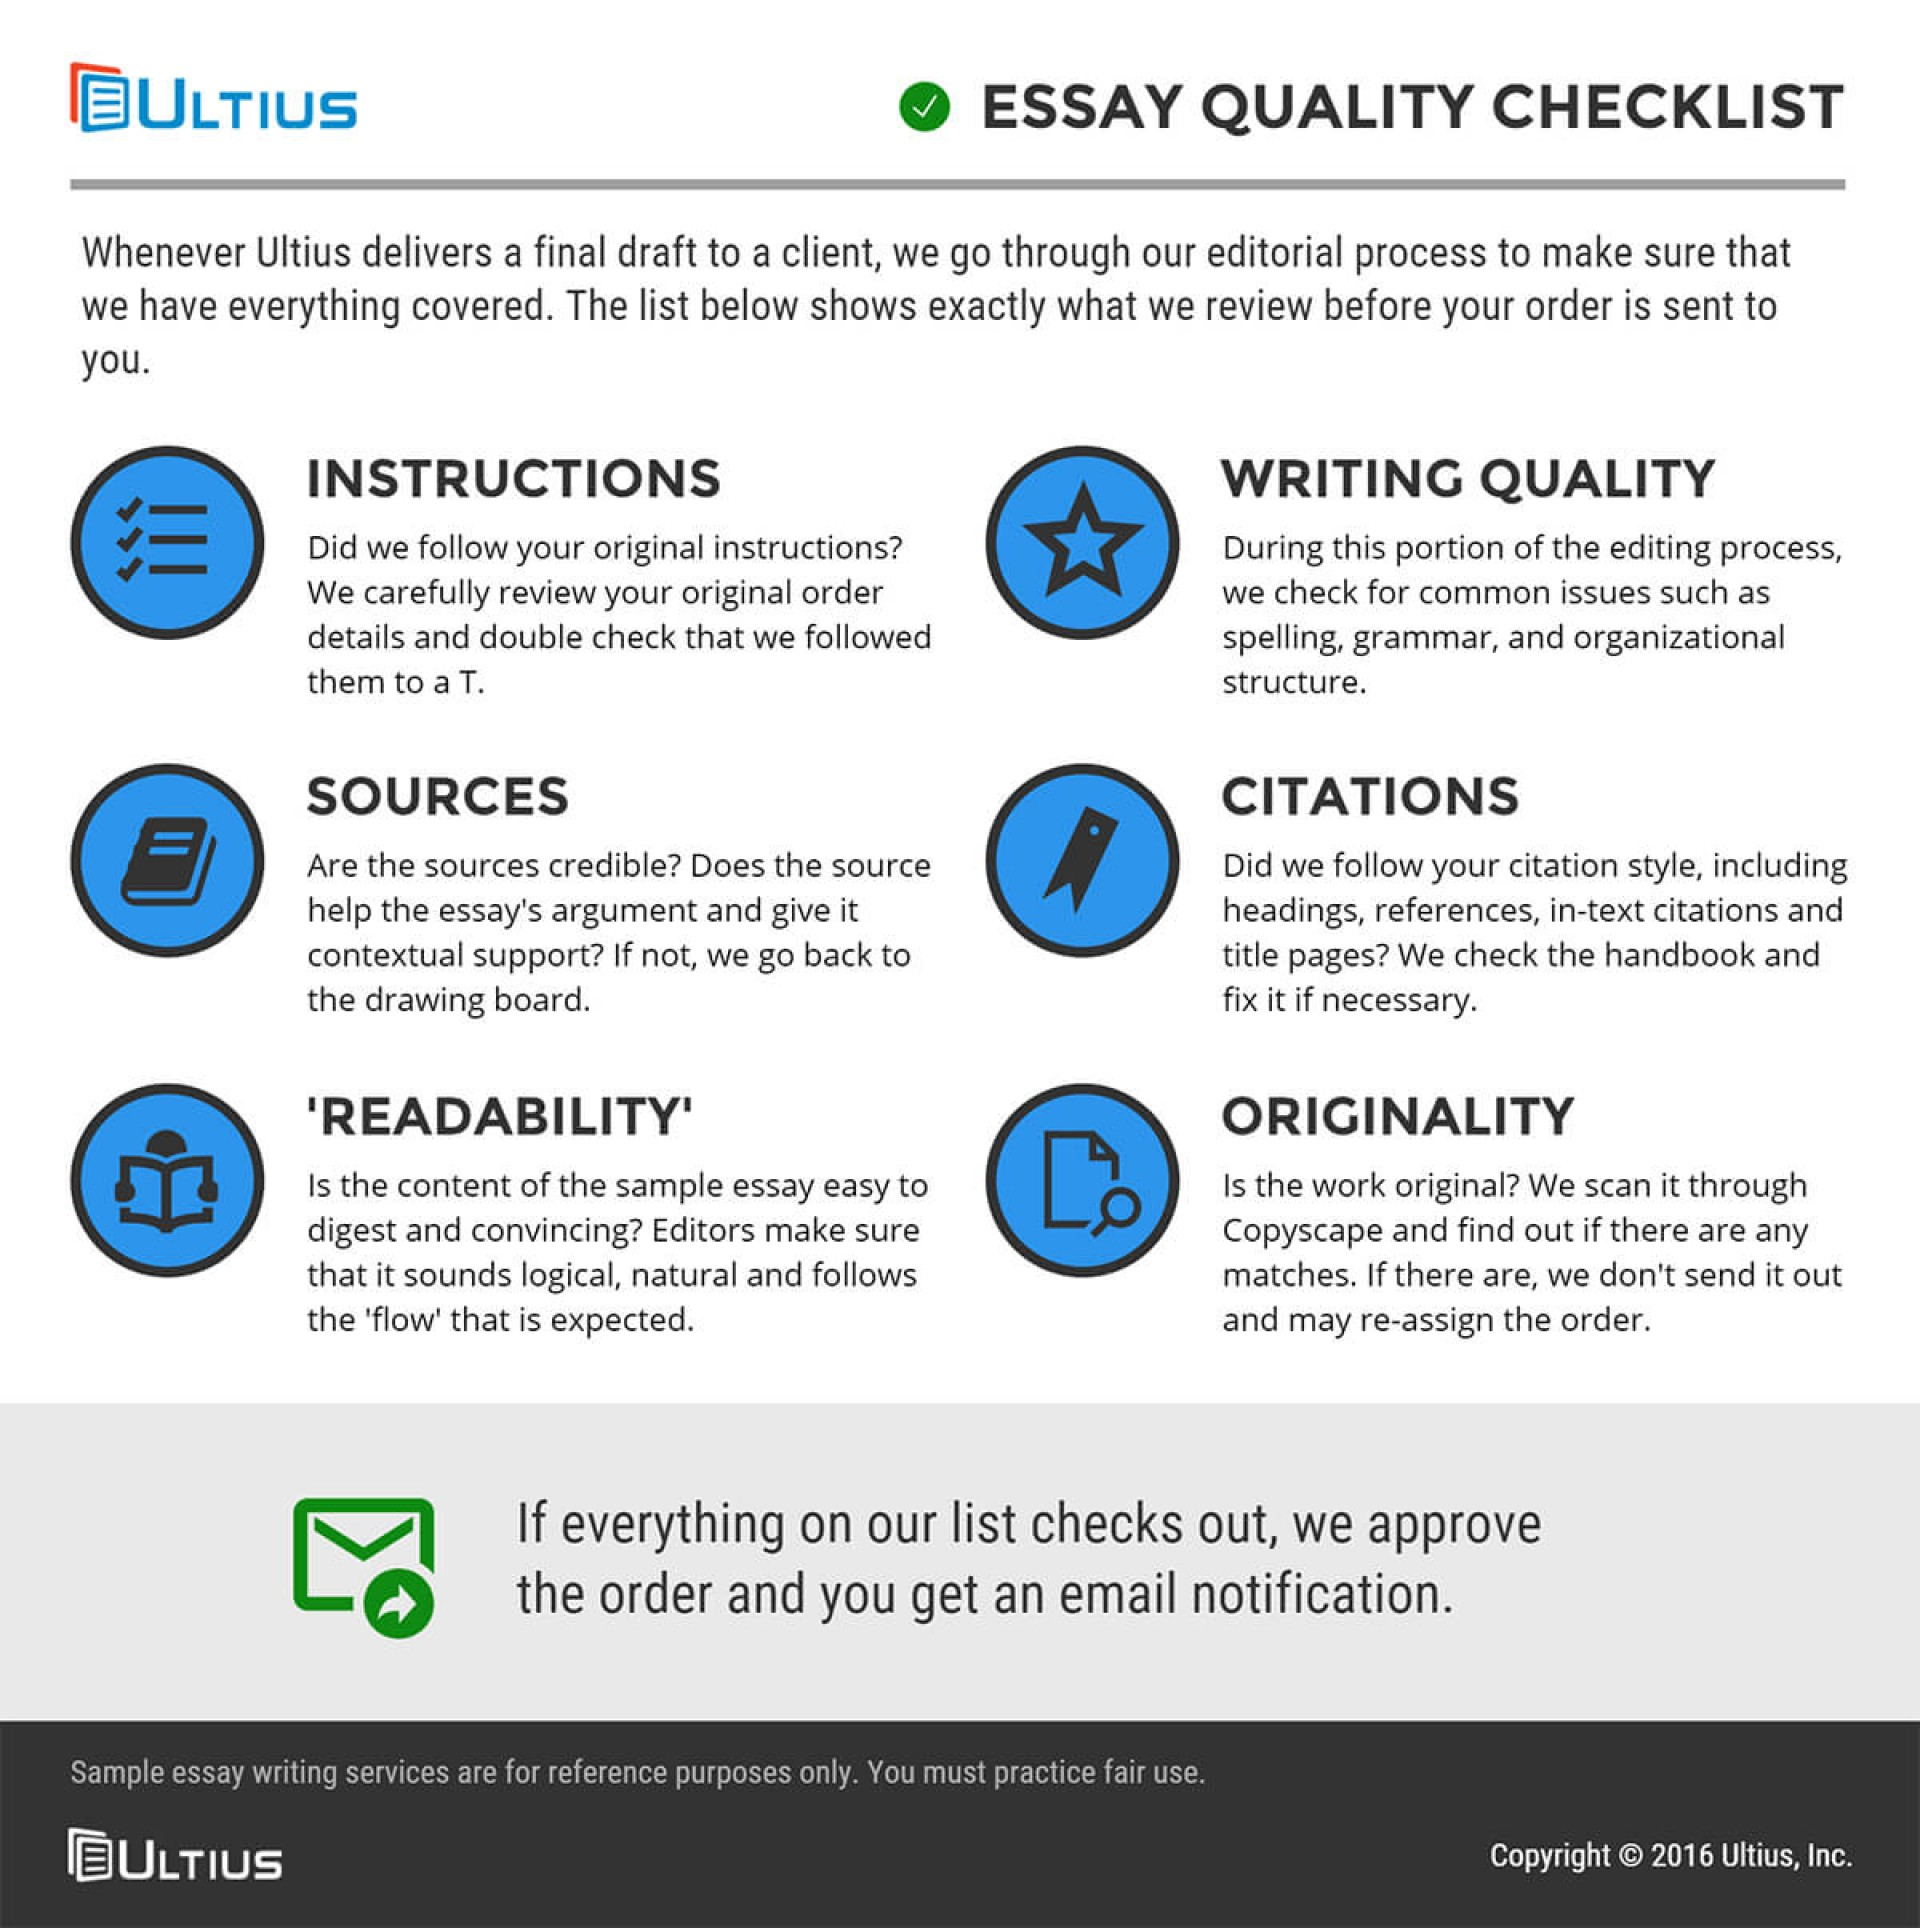 014 Essay Example Purchased Quality Checklist Dreaded Persuasive Topics About Music Rubric 4th Grade Definition Wikipedia 1920